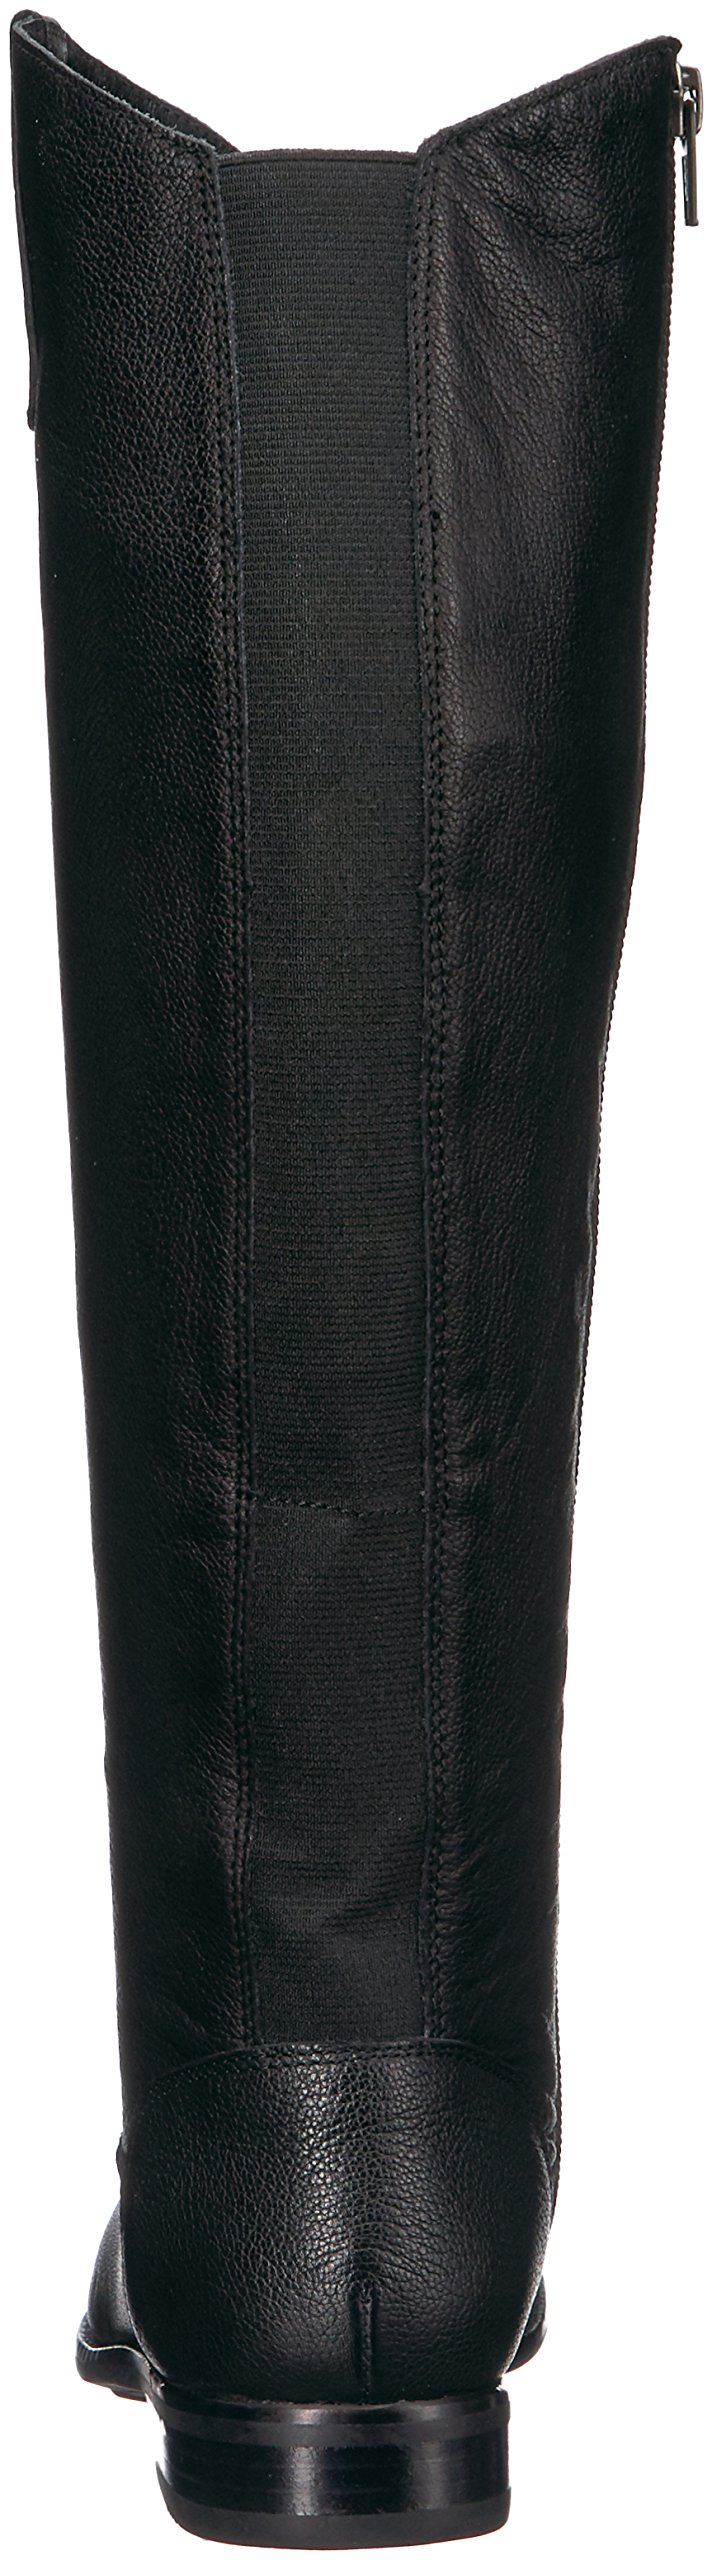 206 Collective Women's Whidbey Riding Boot, Black, 6.5 B US by 206 Collective (Image #2)